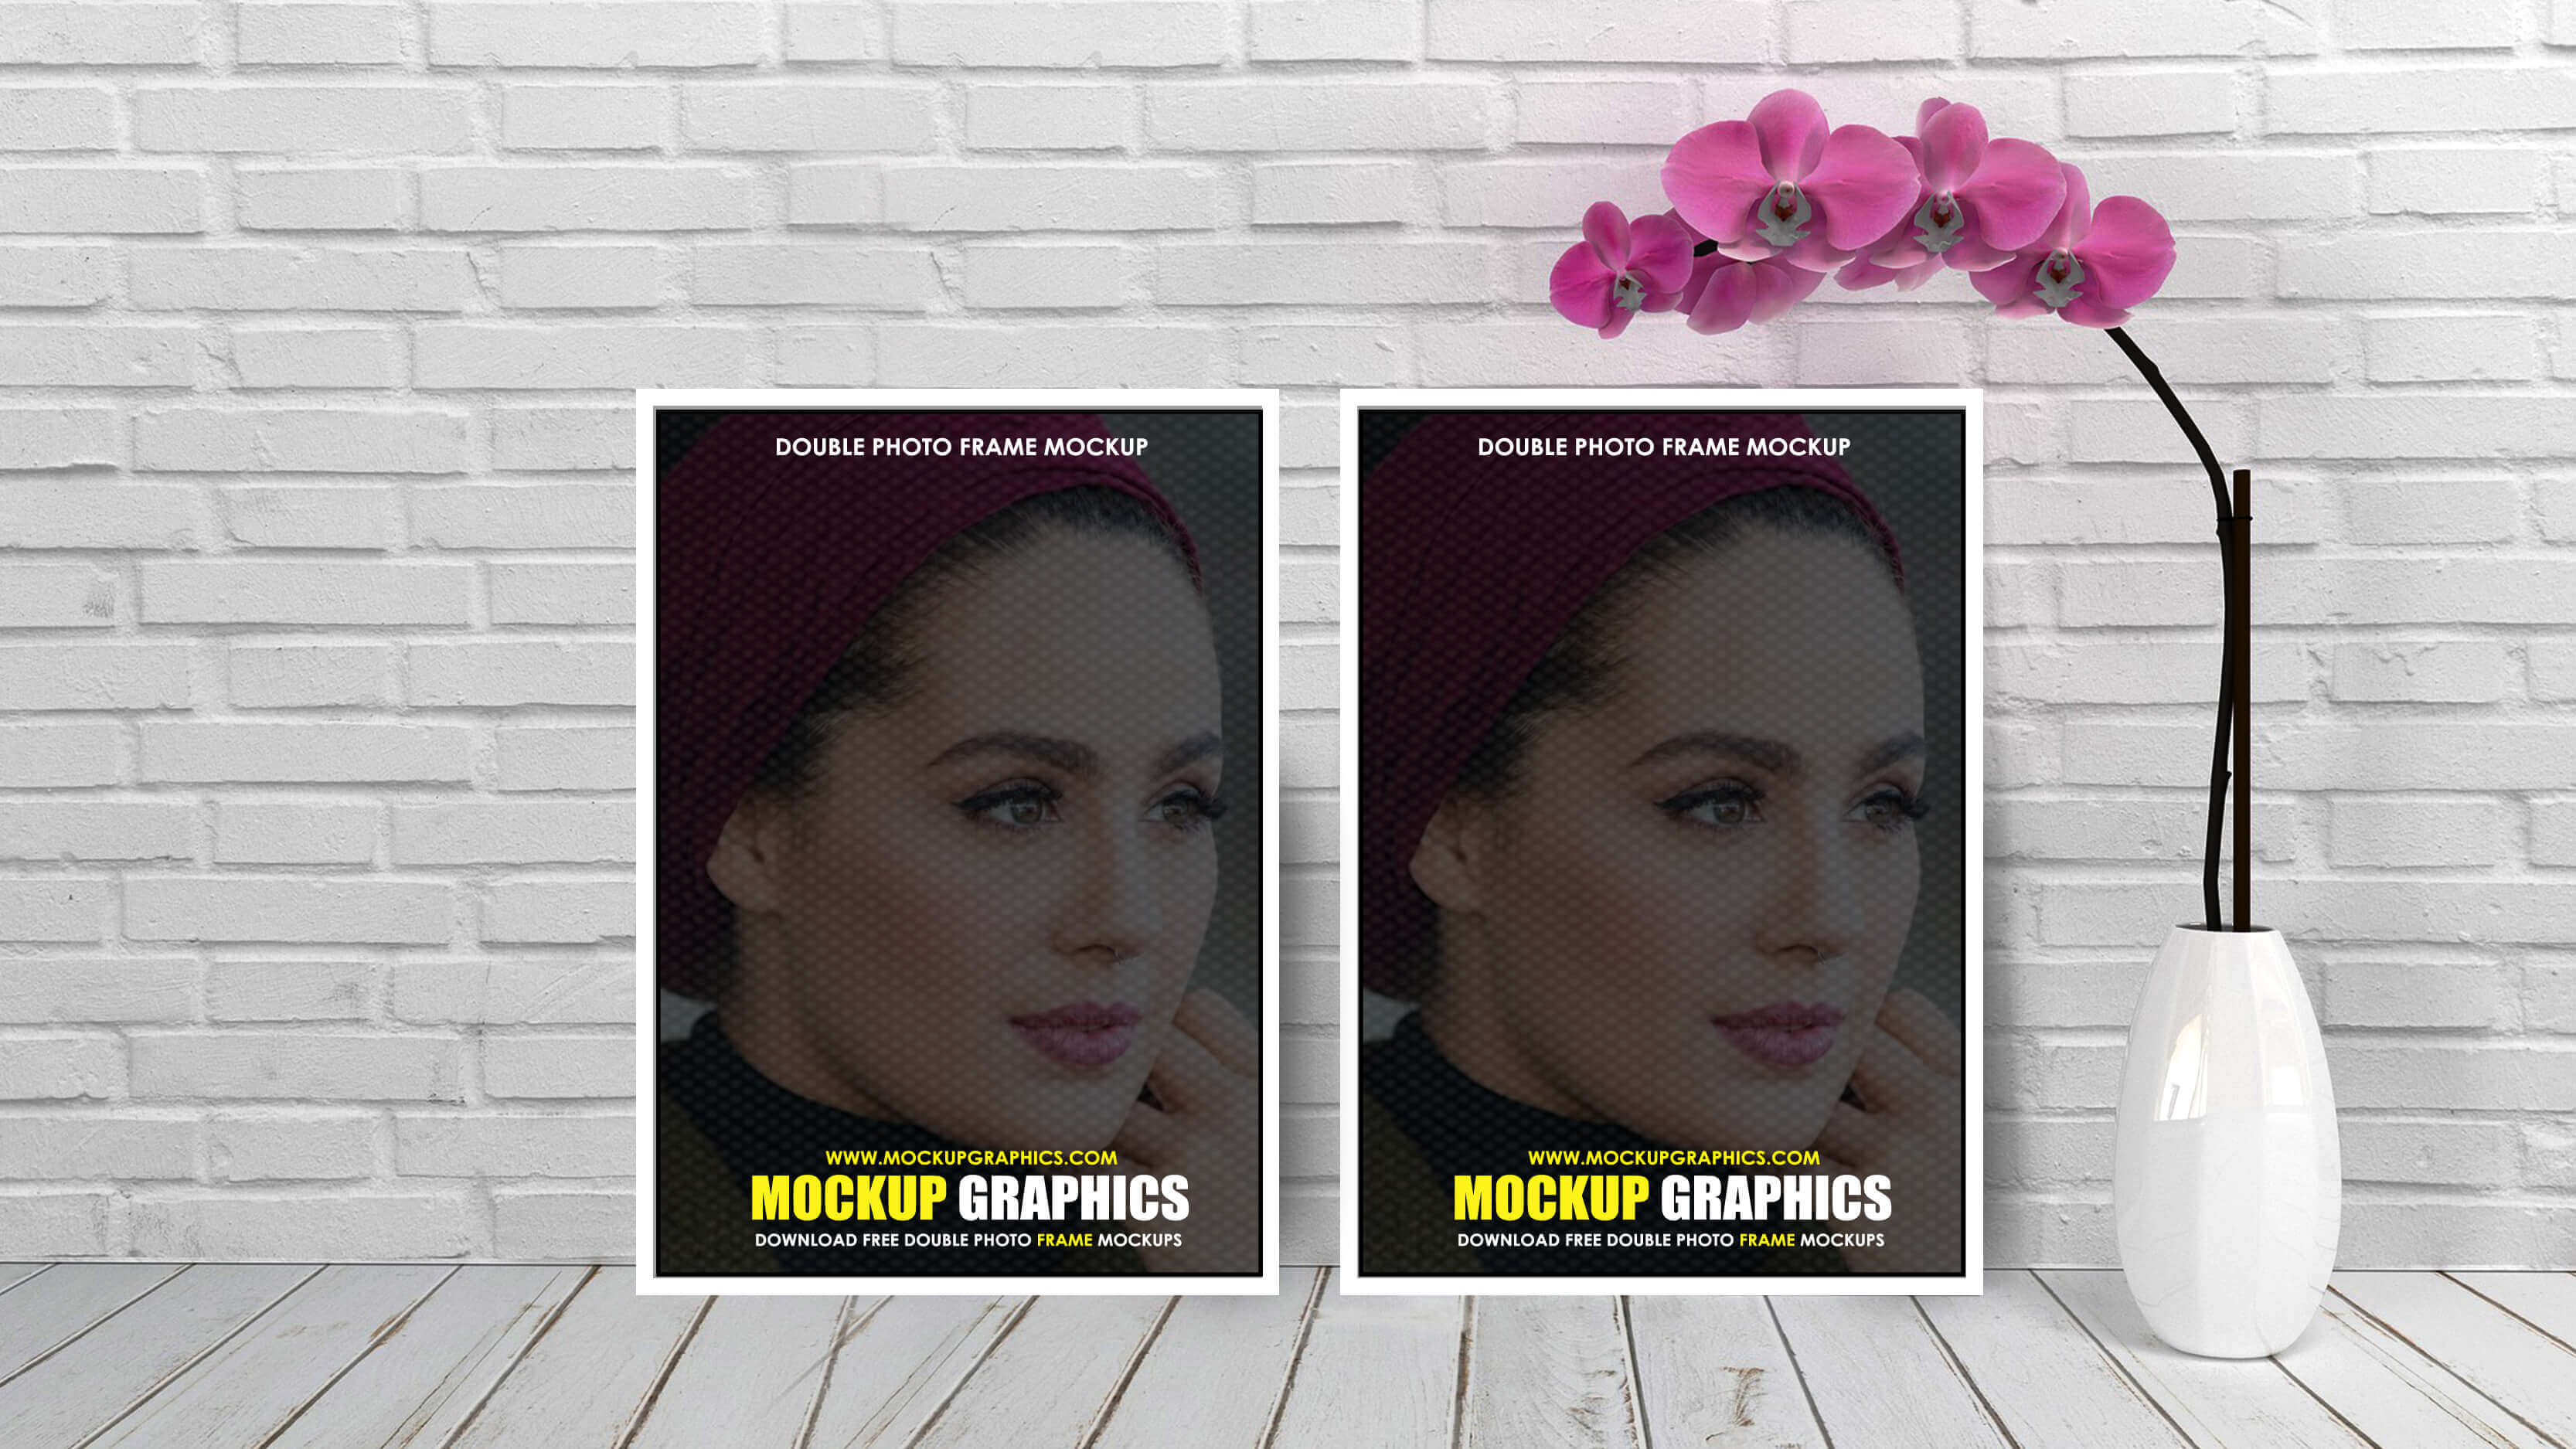 psd double photo frame mockup - www.mockupgraphics.com